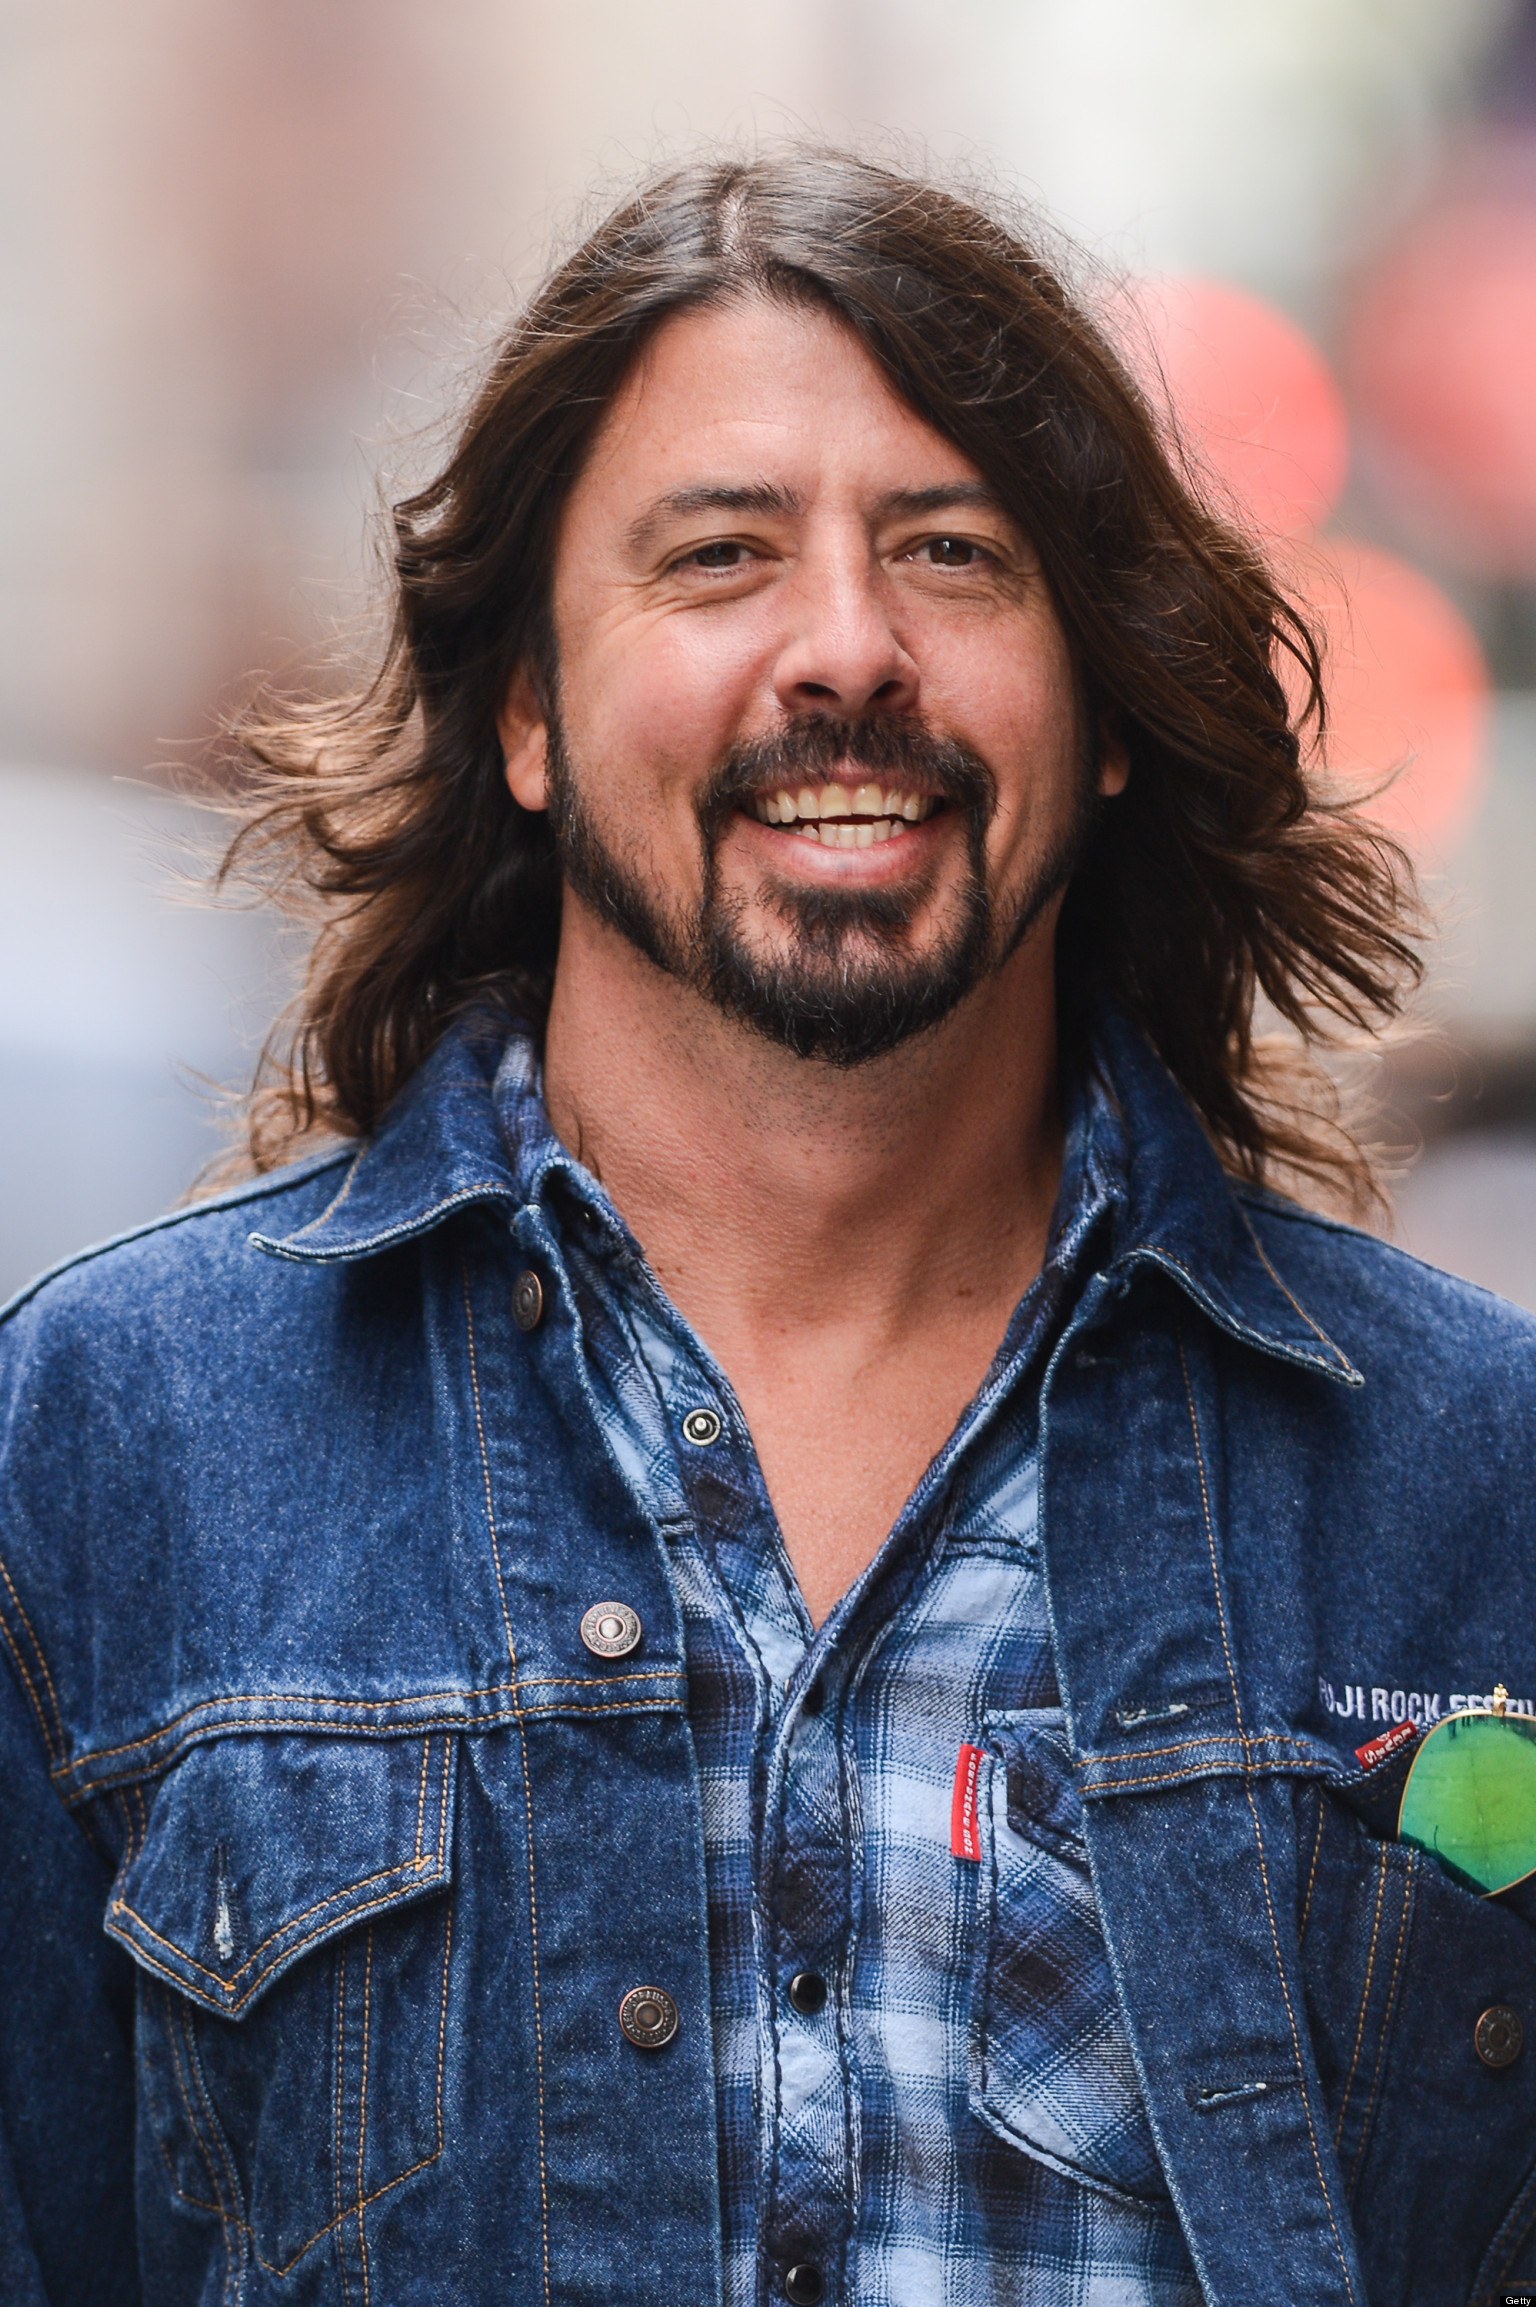 Dave Grohl Relationships